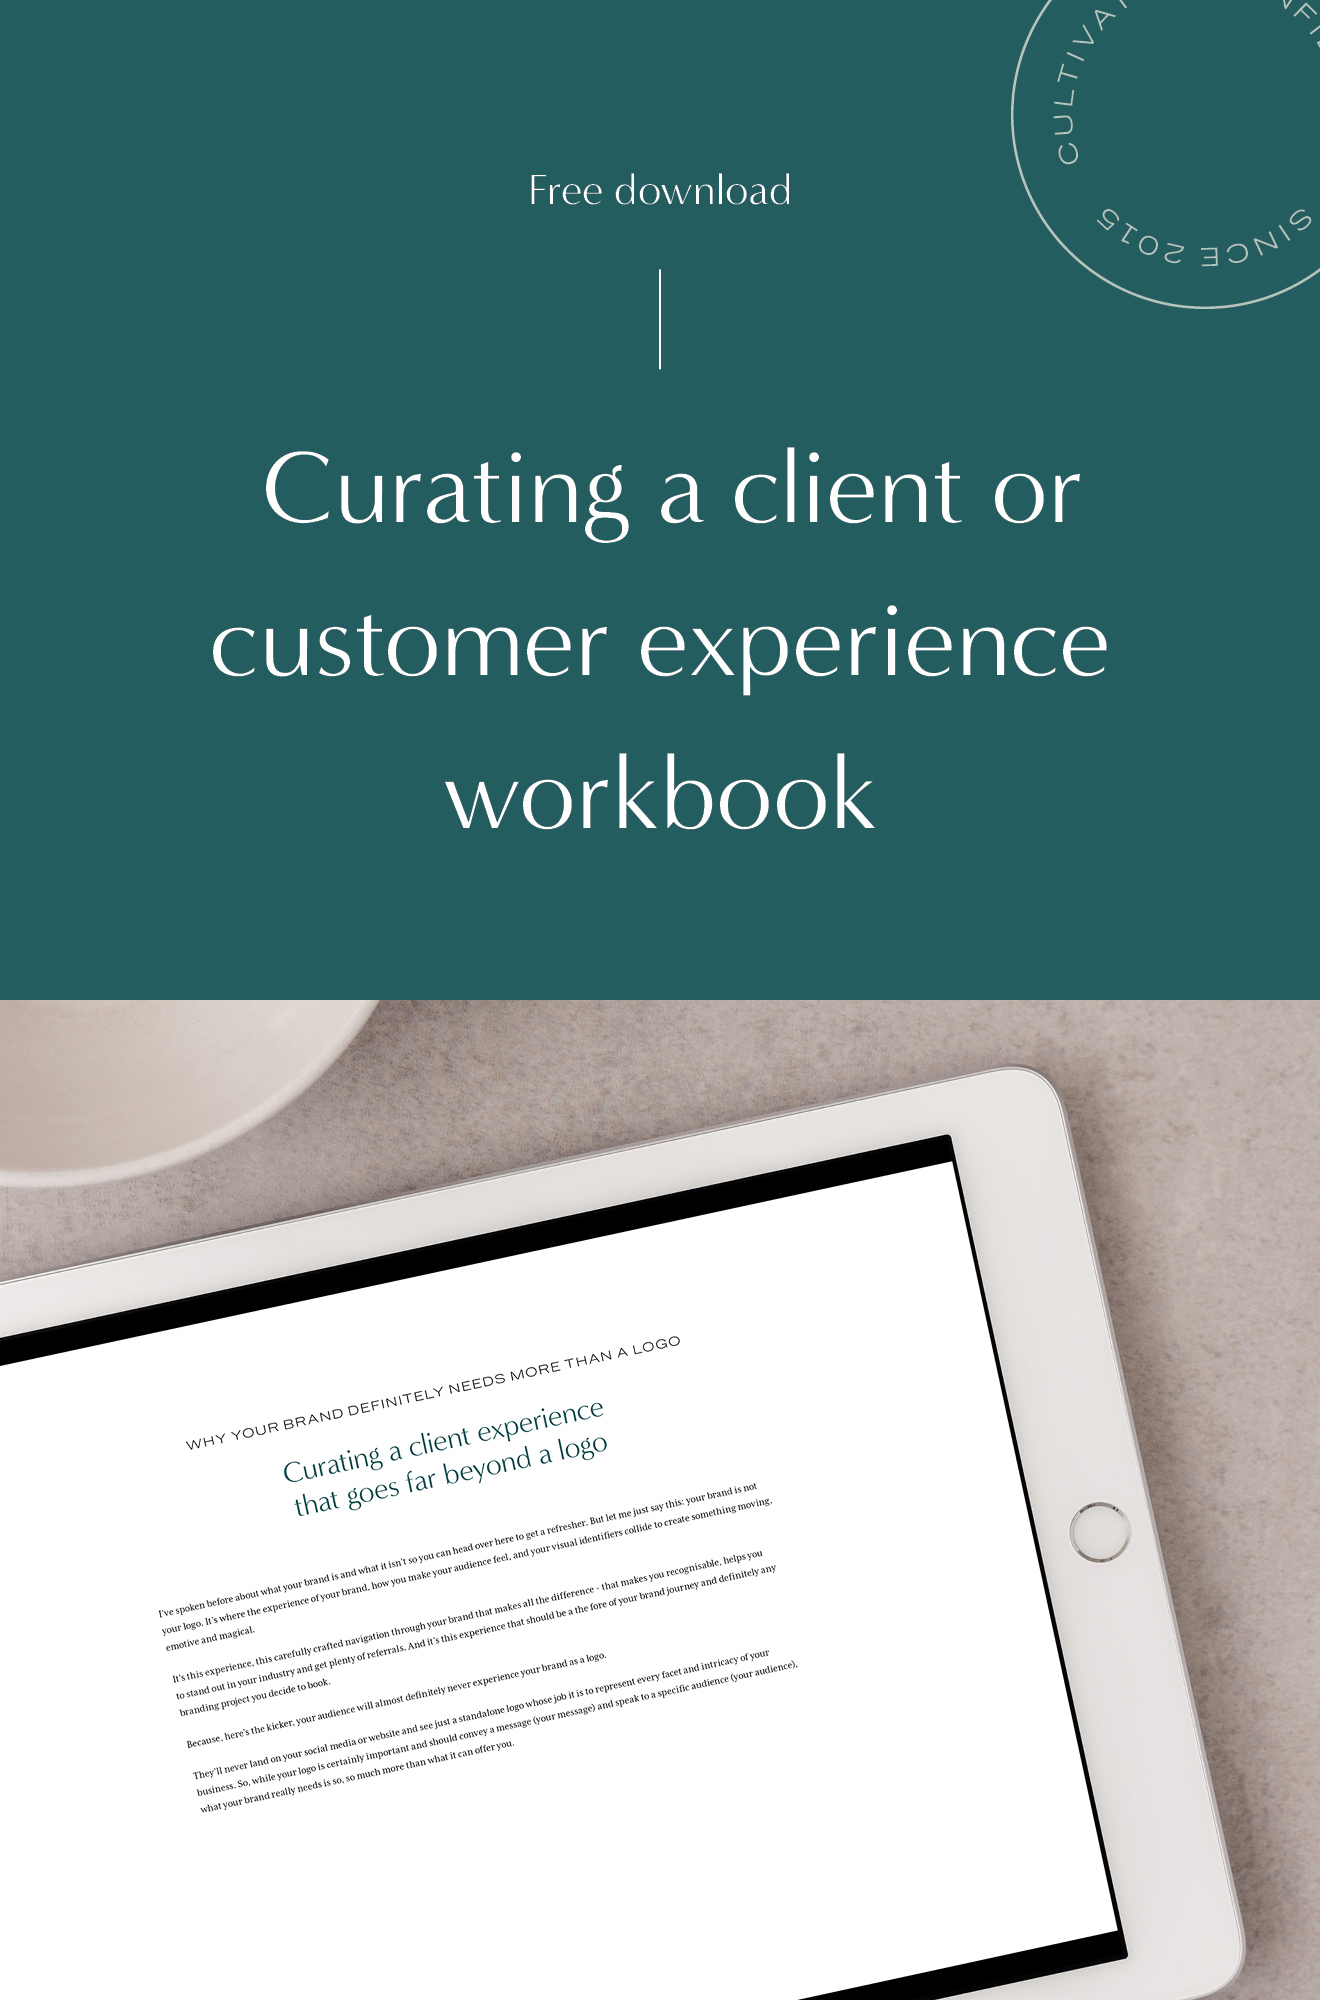 Curate a delightful client or customer experience